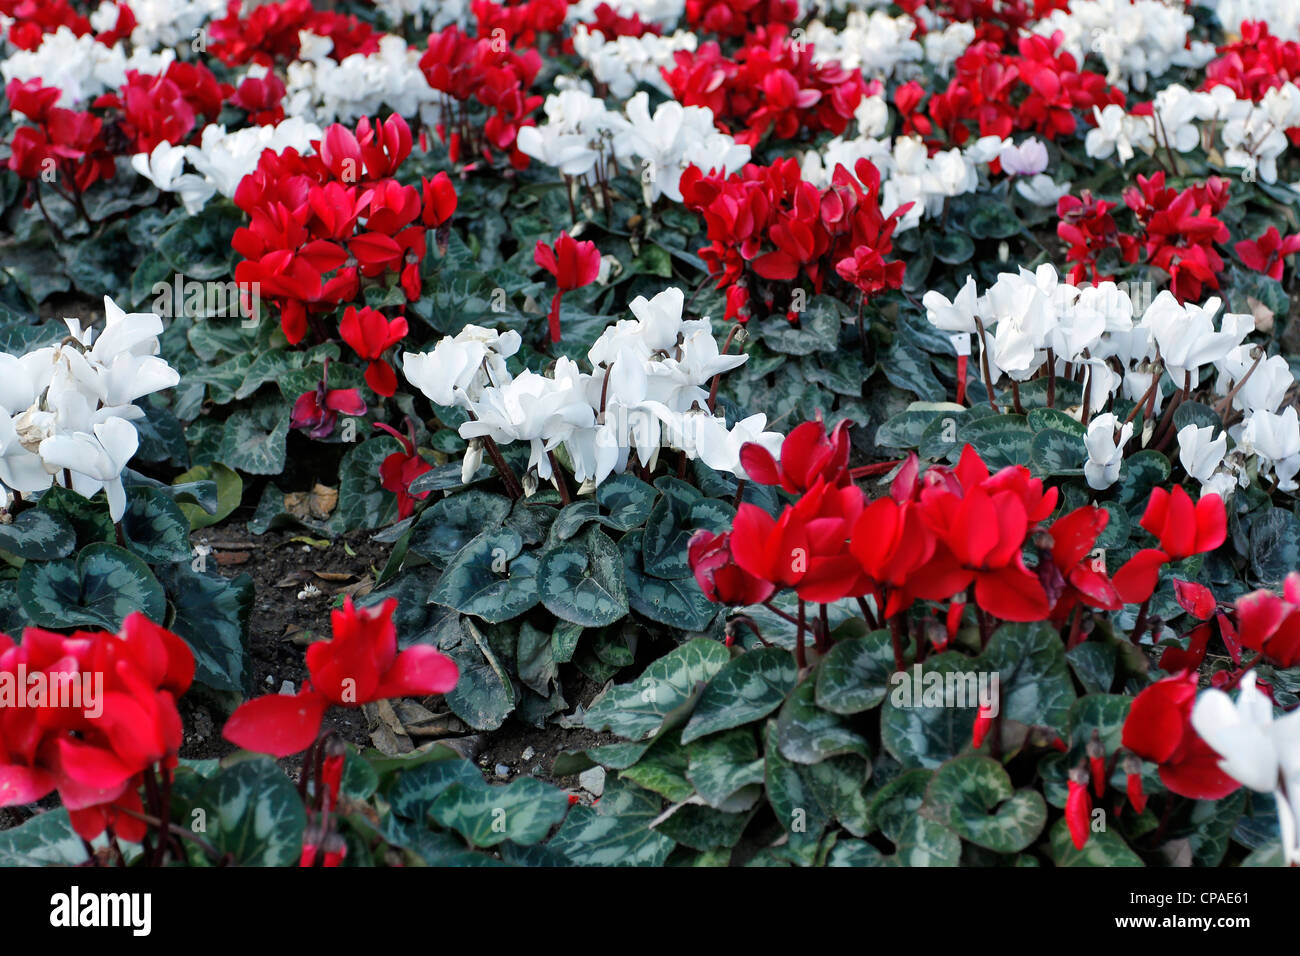 Cyclamen (Cyclamen cilicium) white and red geometrical disposition in a bed - Stock Image